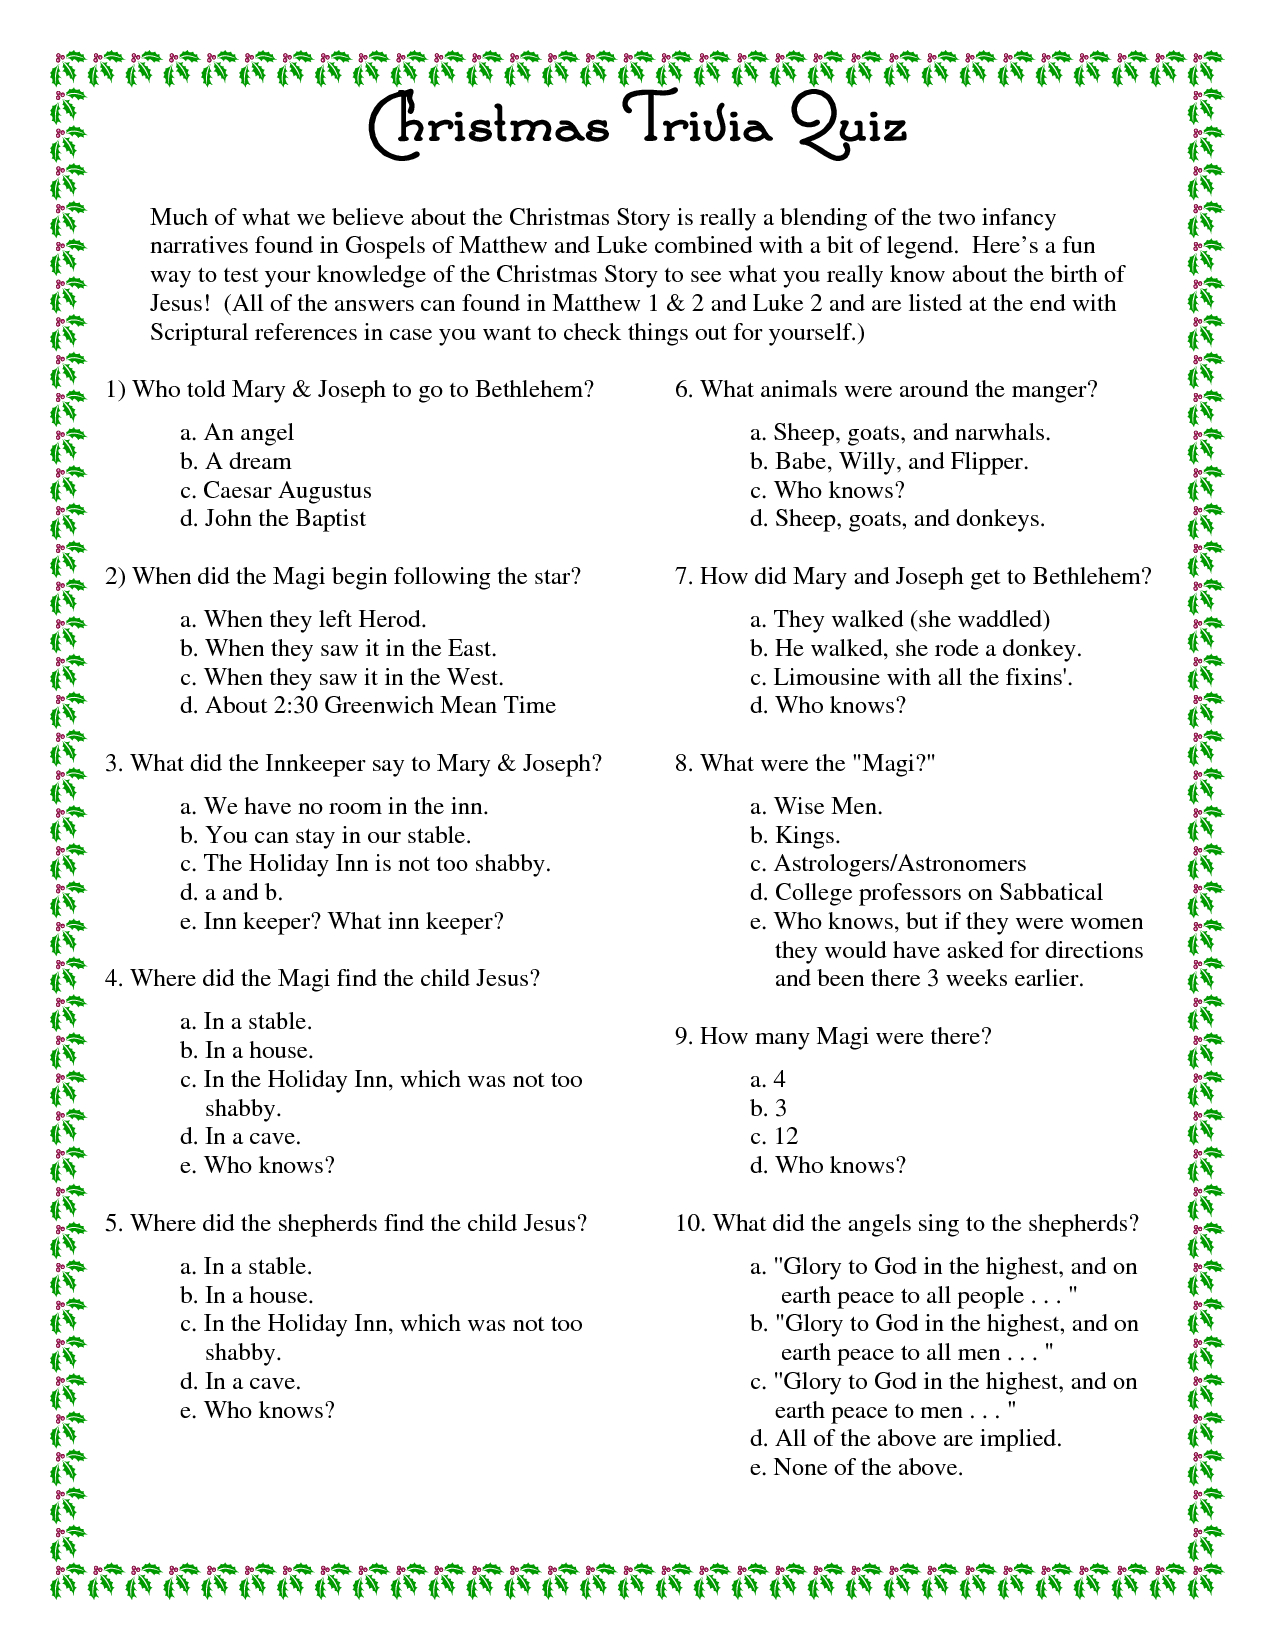 Printable Christmas Trivia Questions And Answers | Christmas Party - Free Christmas Picture Quiz Questions And Answers Printable